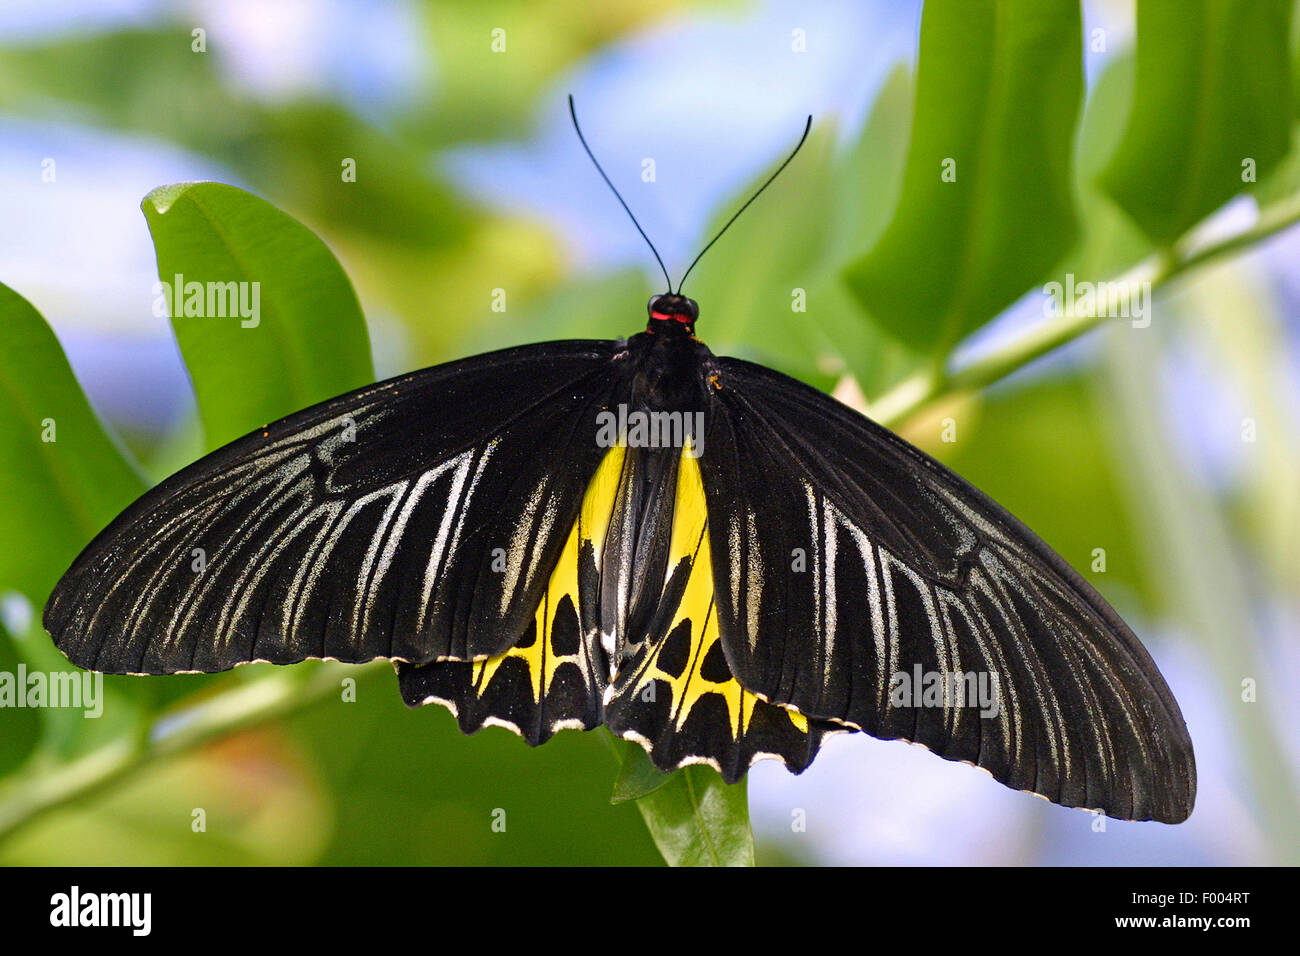 tropical butterfly (Troides helena), on a twig - Stock Image